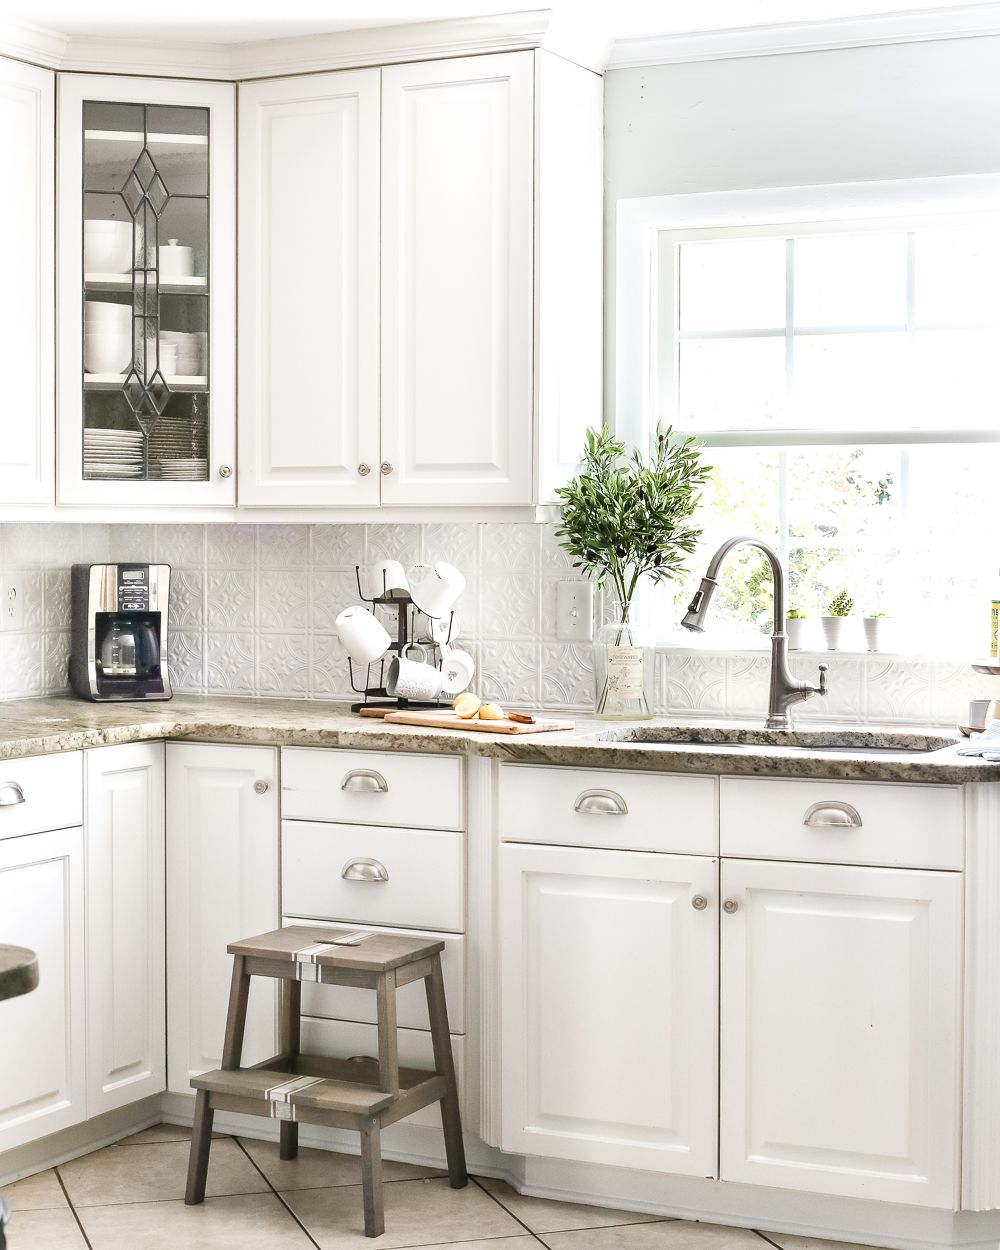 Diy Pressed Tin Kitchen Backsplash Bless Er House Tin